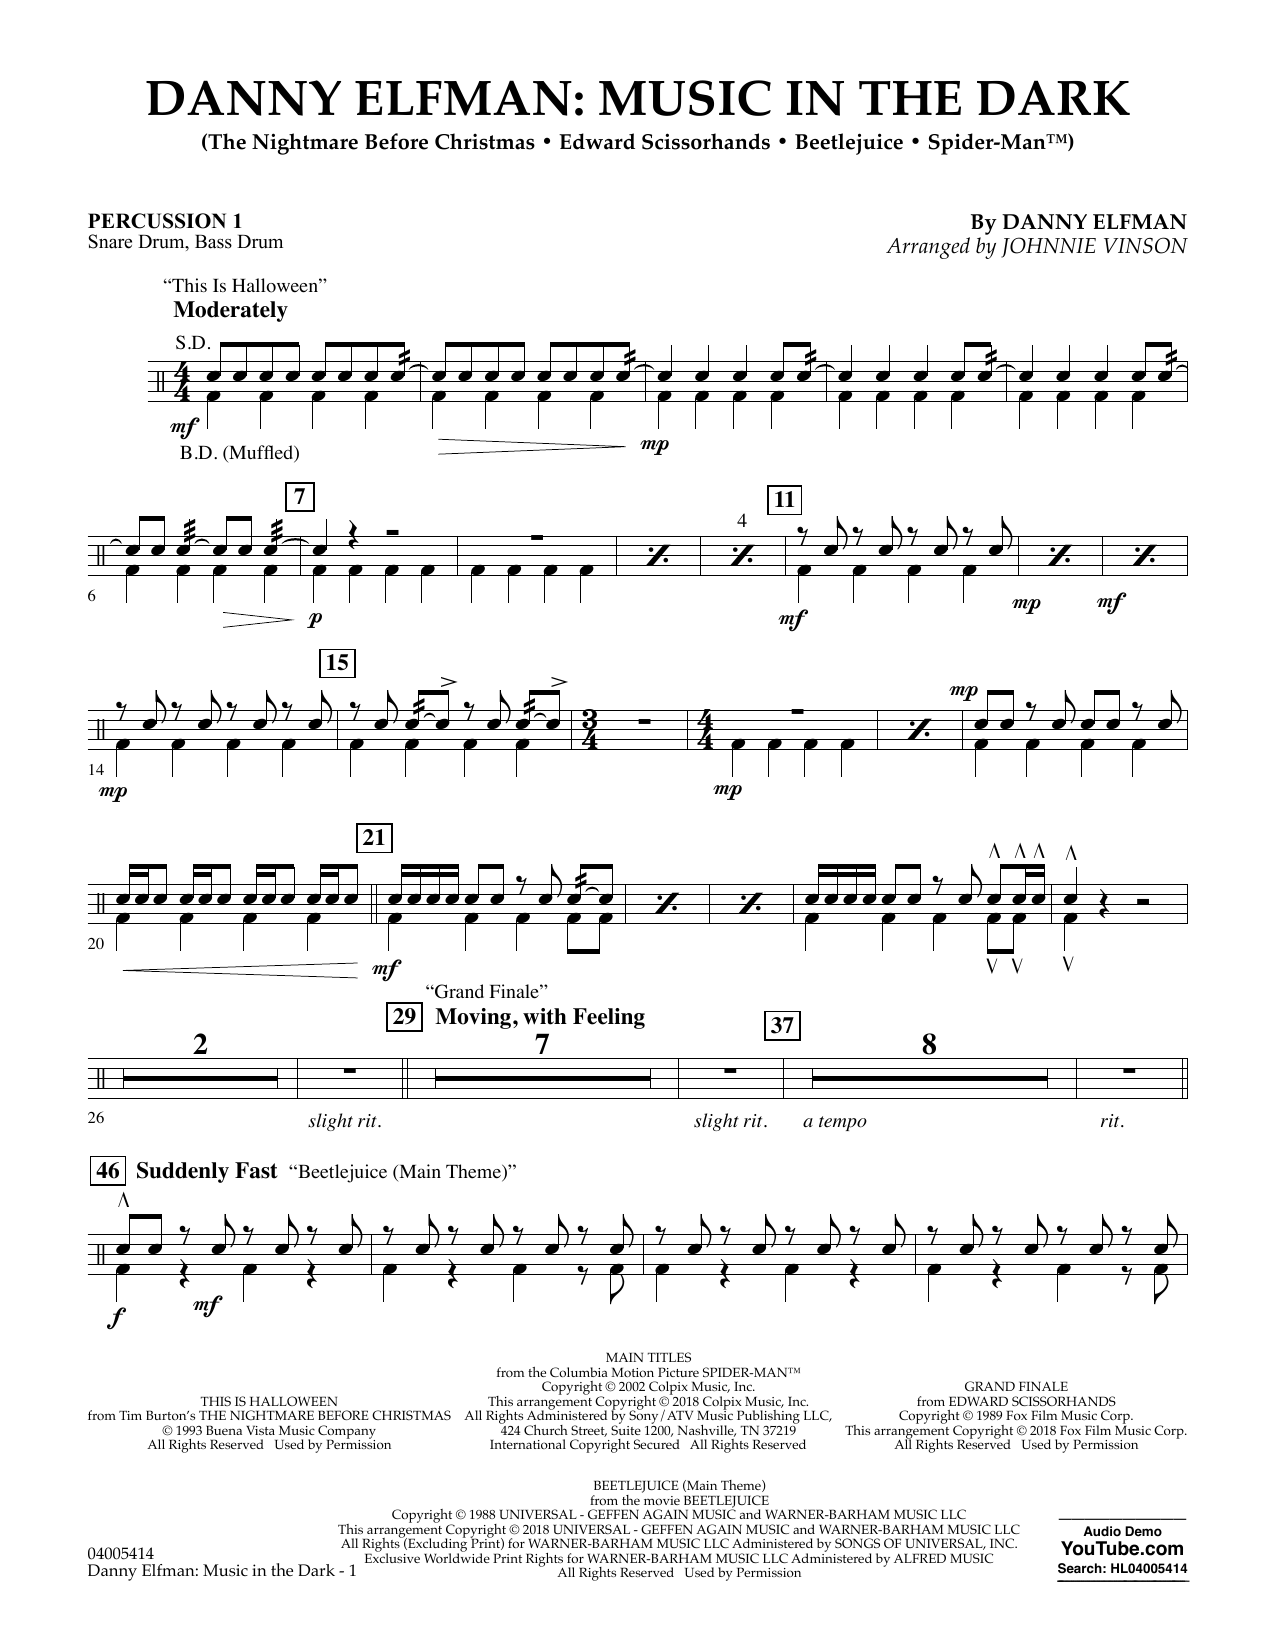 Danny Elfman: Music in the Dark - Percussion 1 (Concert Band)